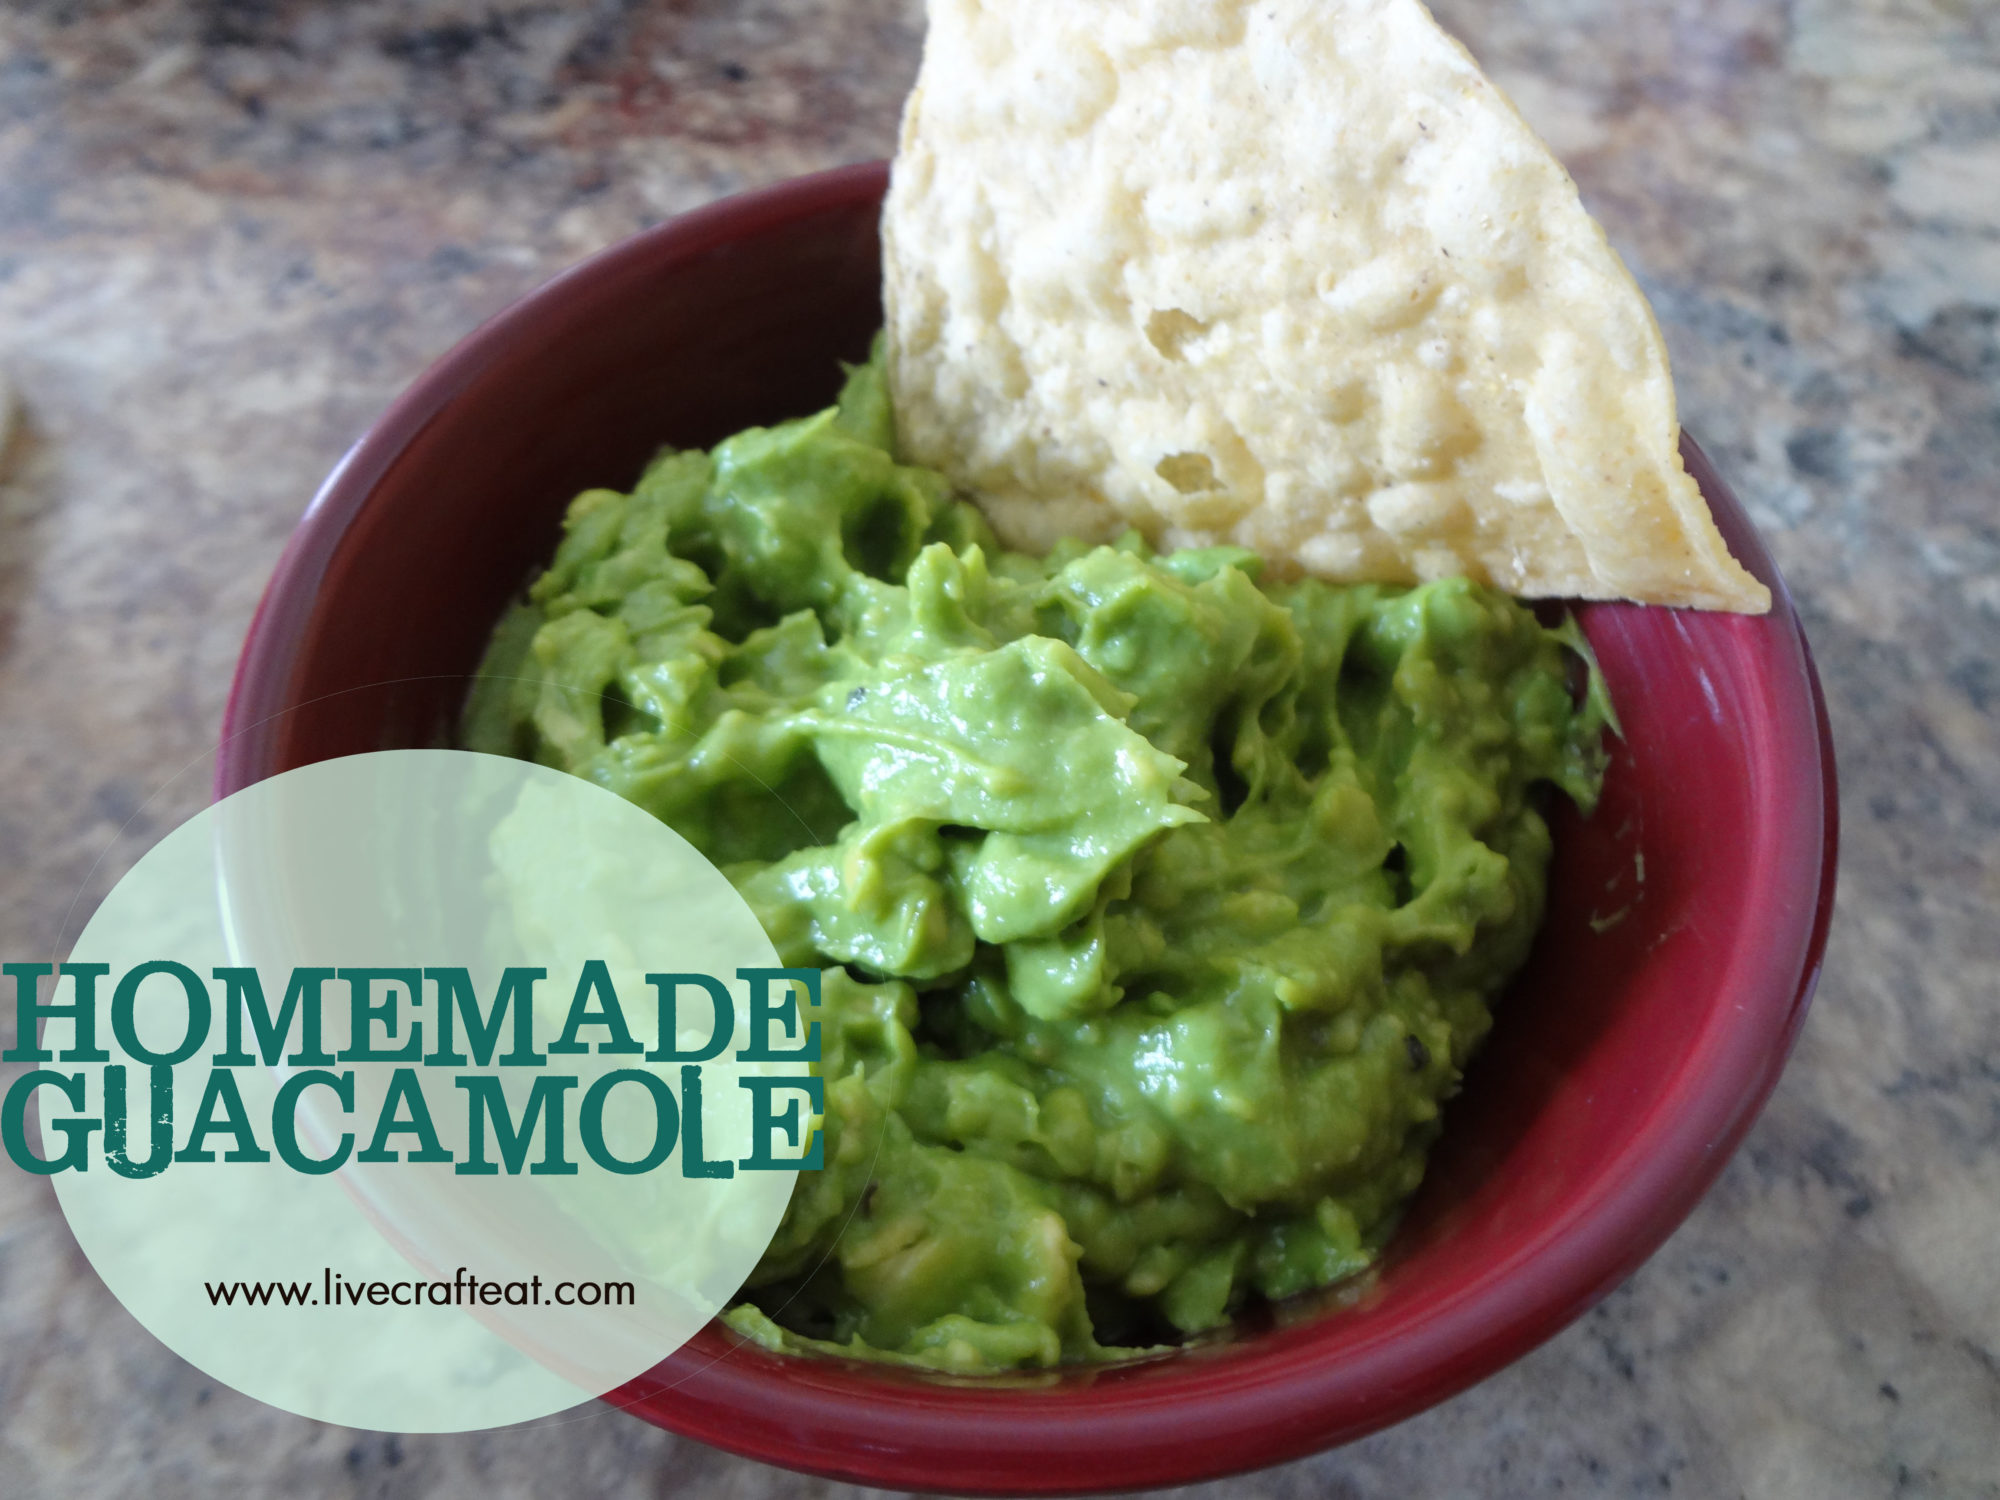 ... make our own guacamole instead of buying it already made at the store